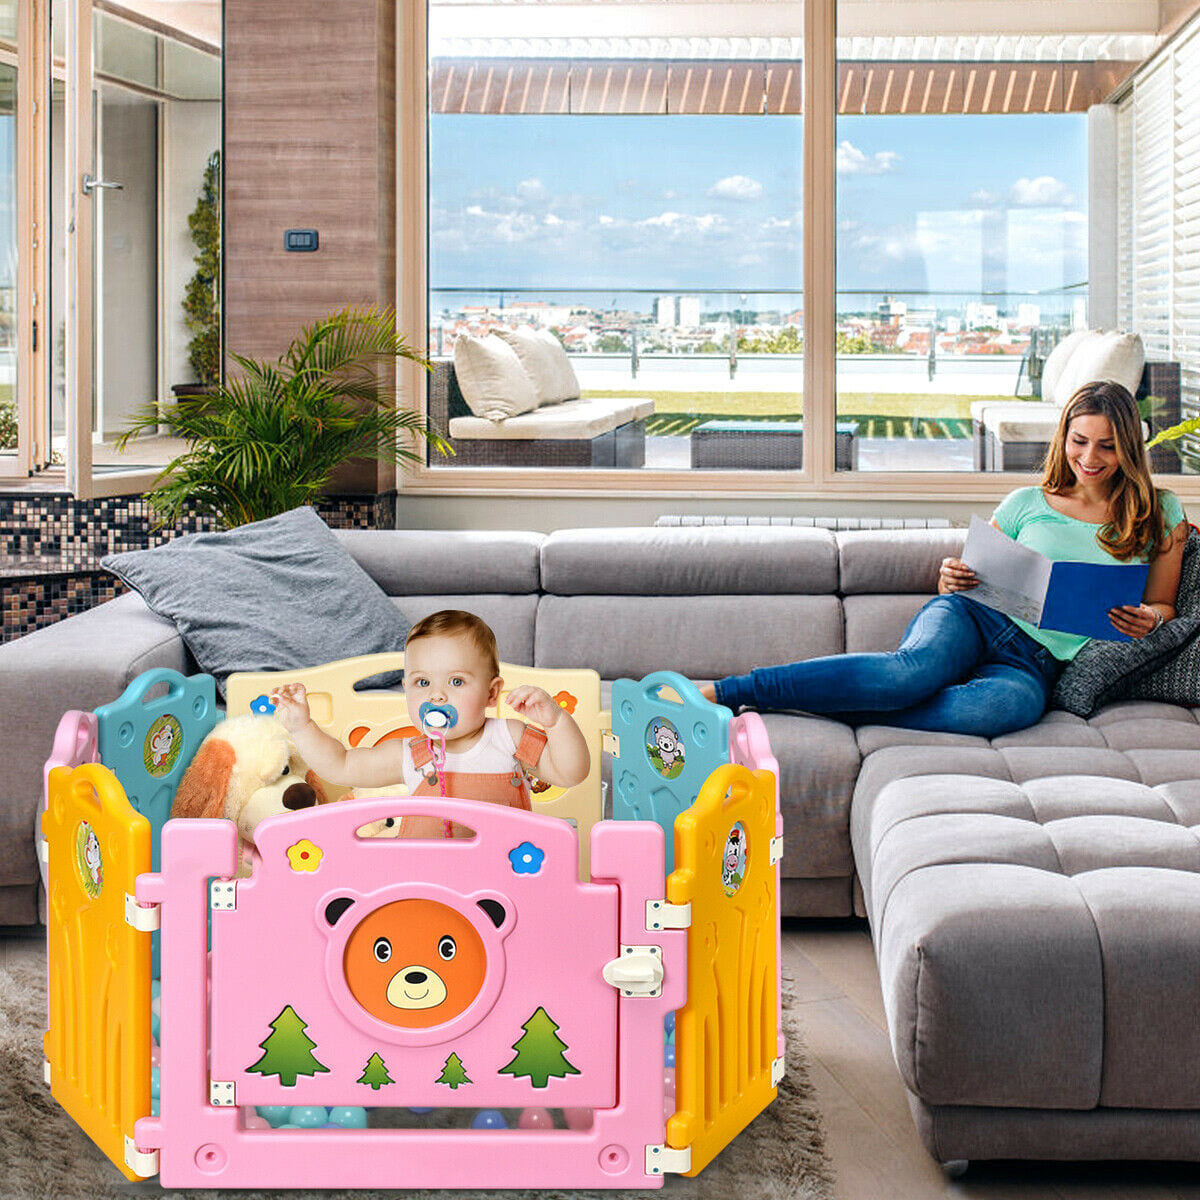 8 Panel Home Indoor Outdoor Kids Center Safety Playpen - FREE SHIPPING